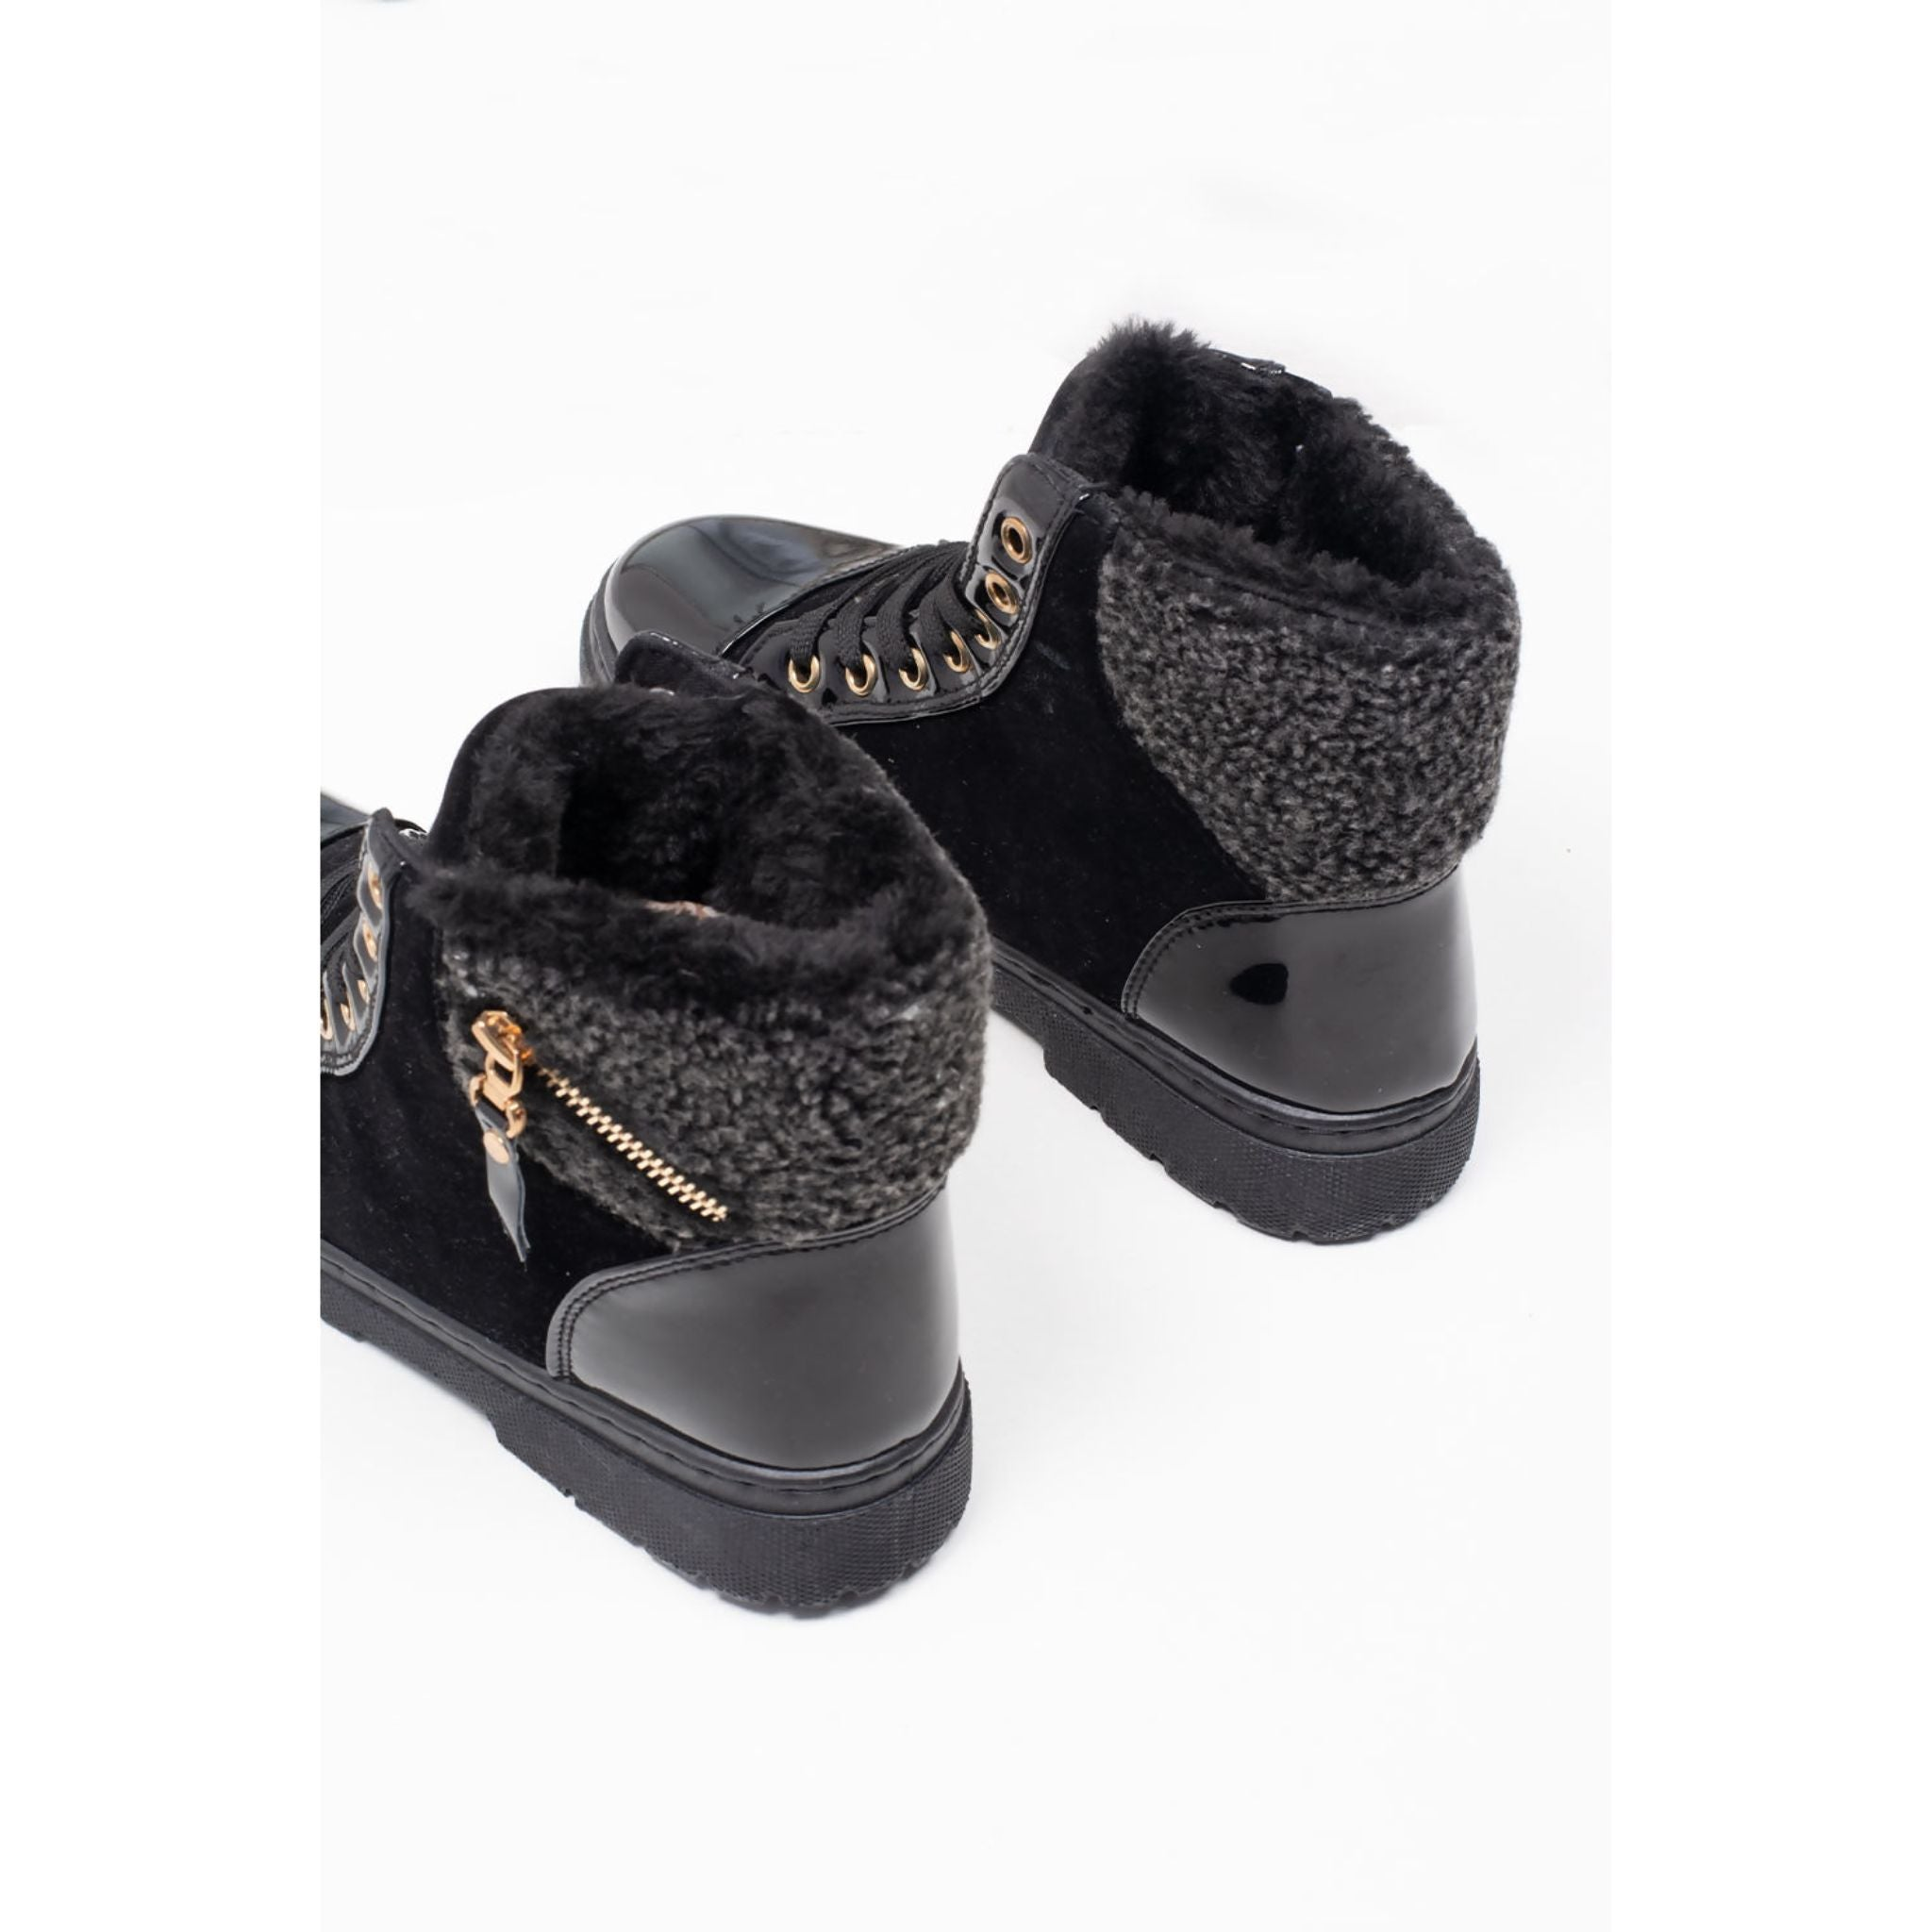 Black Lace Up Borg Fur Boots